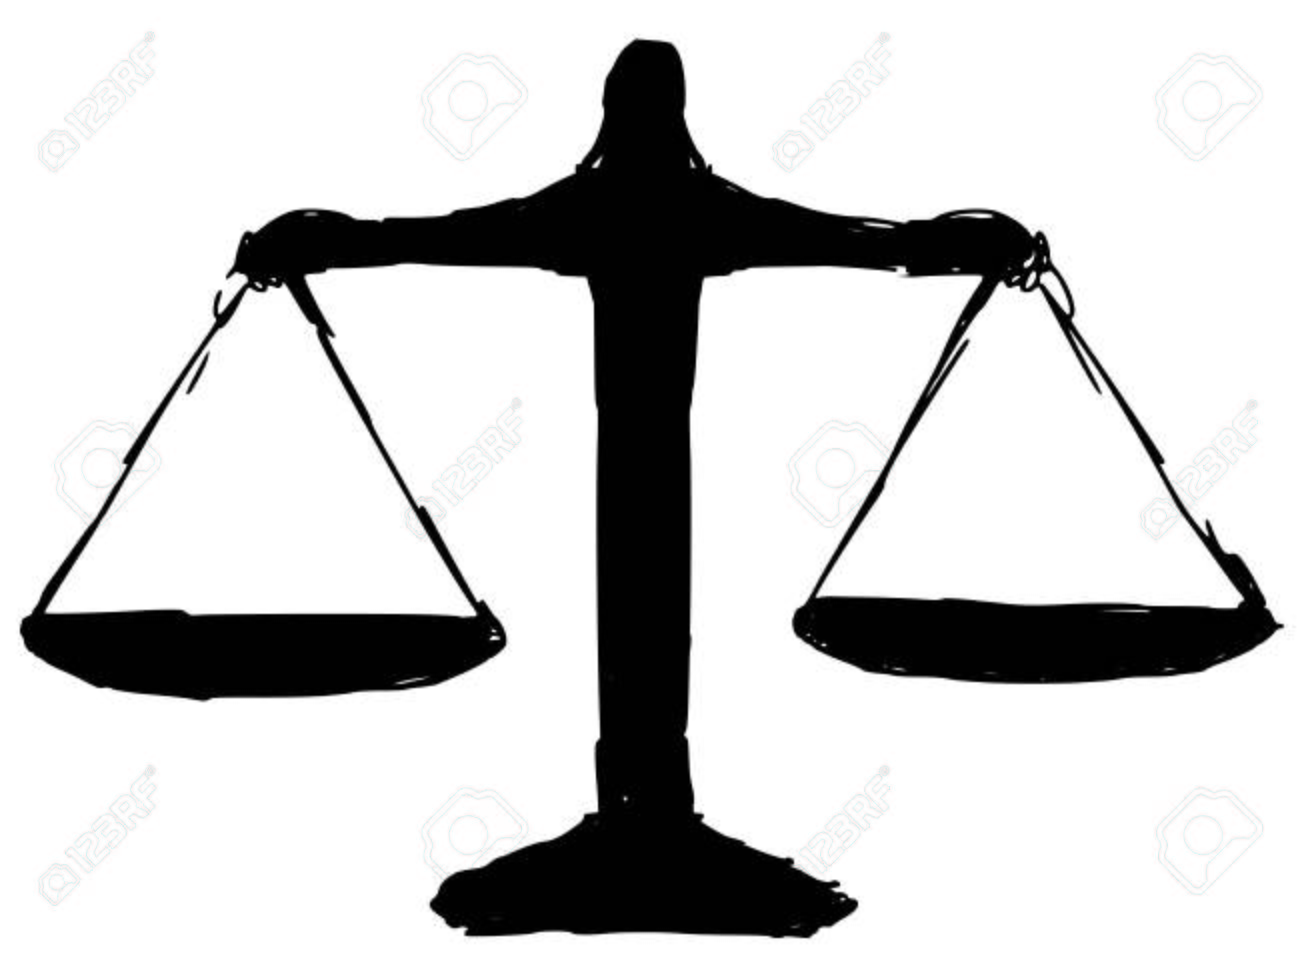 Justice scales clipart free download best justice scales clipart 1300x974 black silhouette of justice scales royalty free cliparts vectors biocorpaavc Images